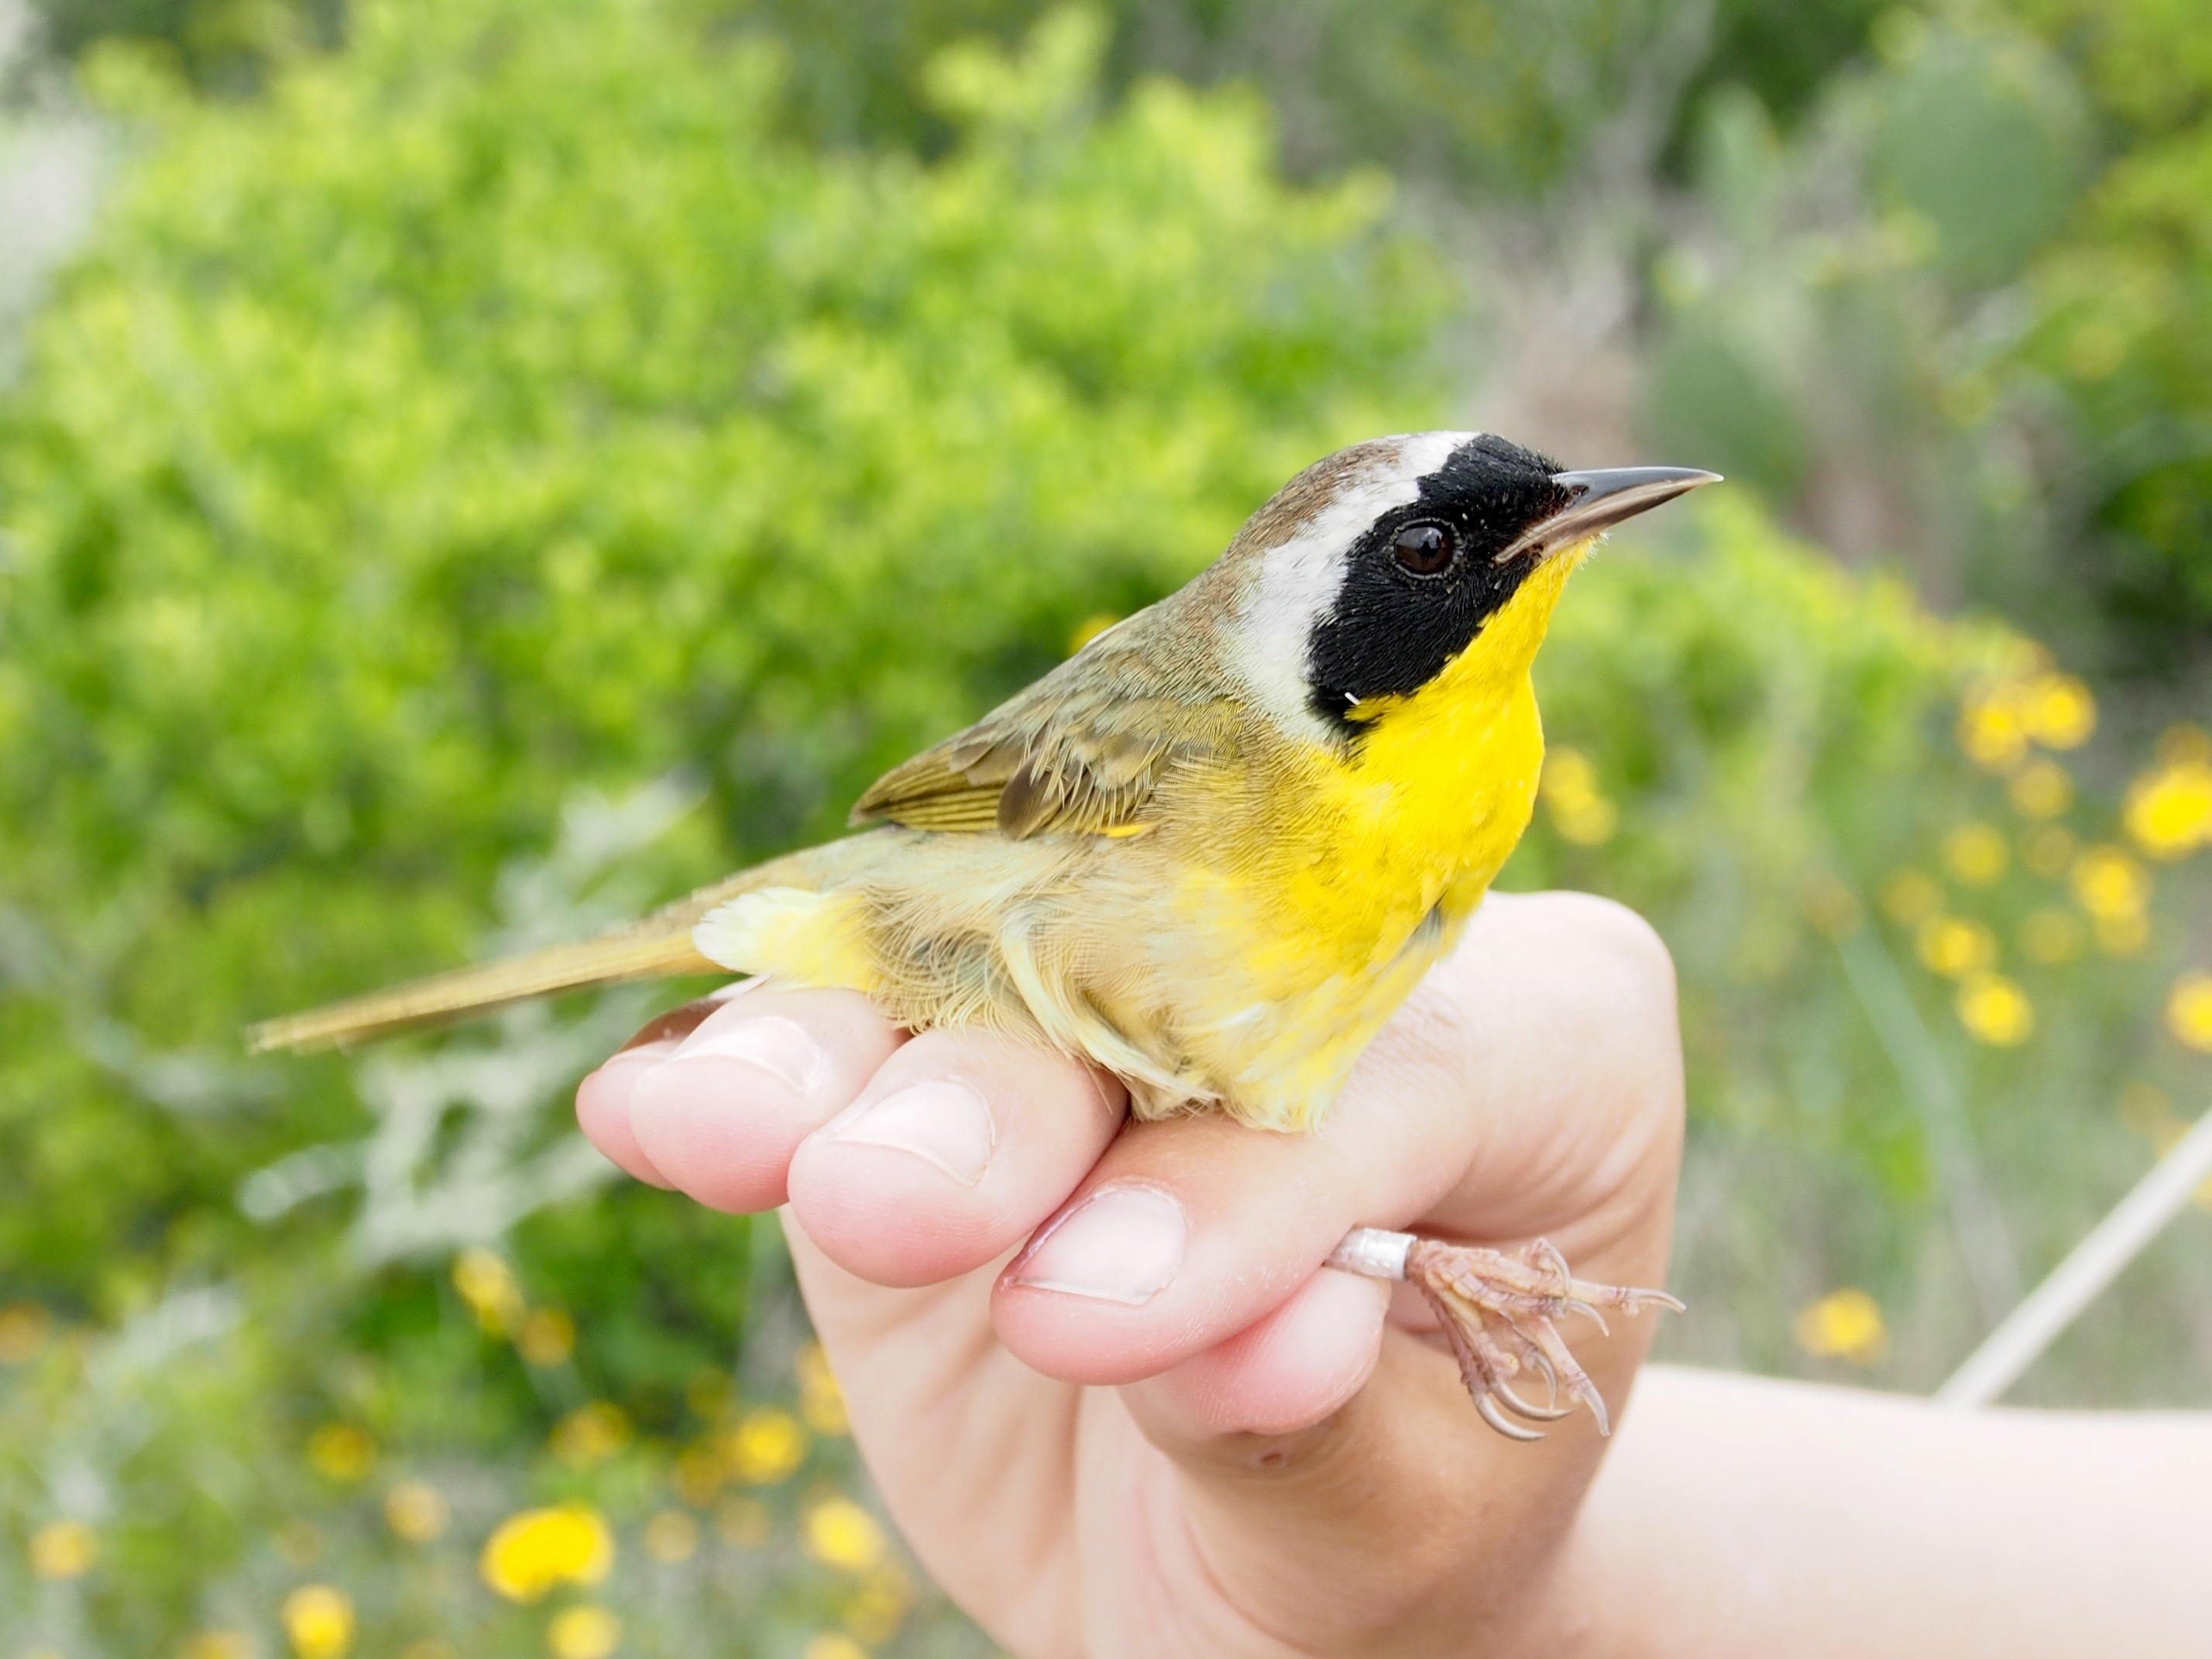 A common yellowthroat songbird in someone's hand